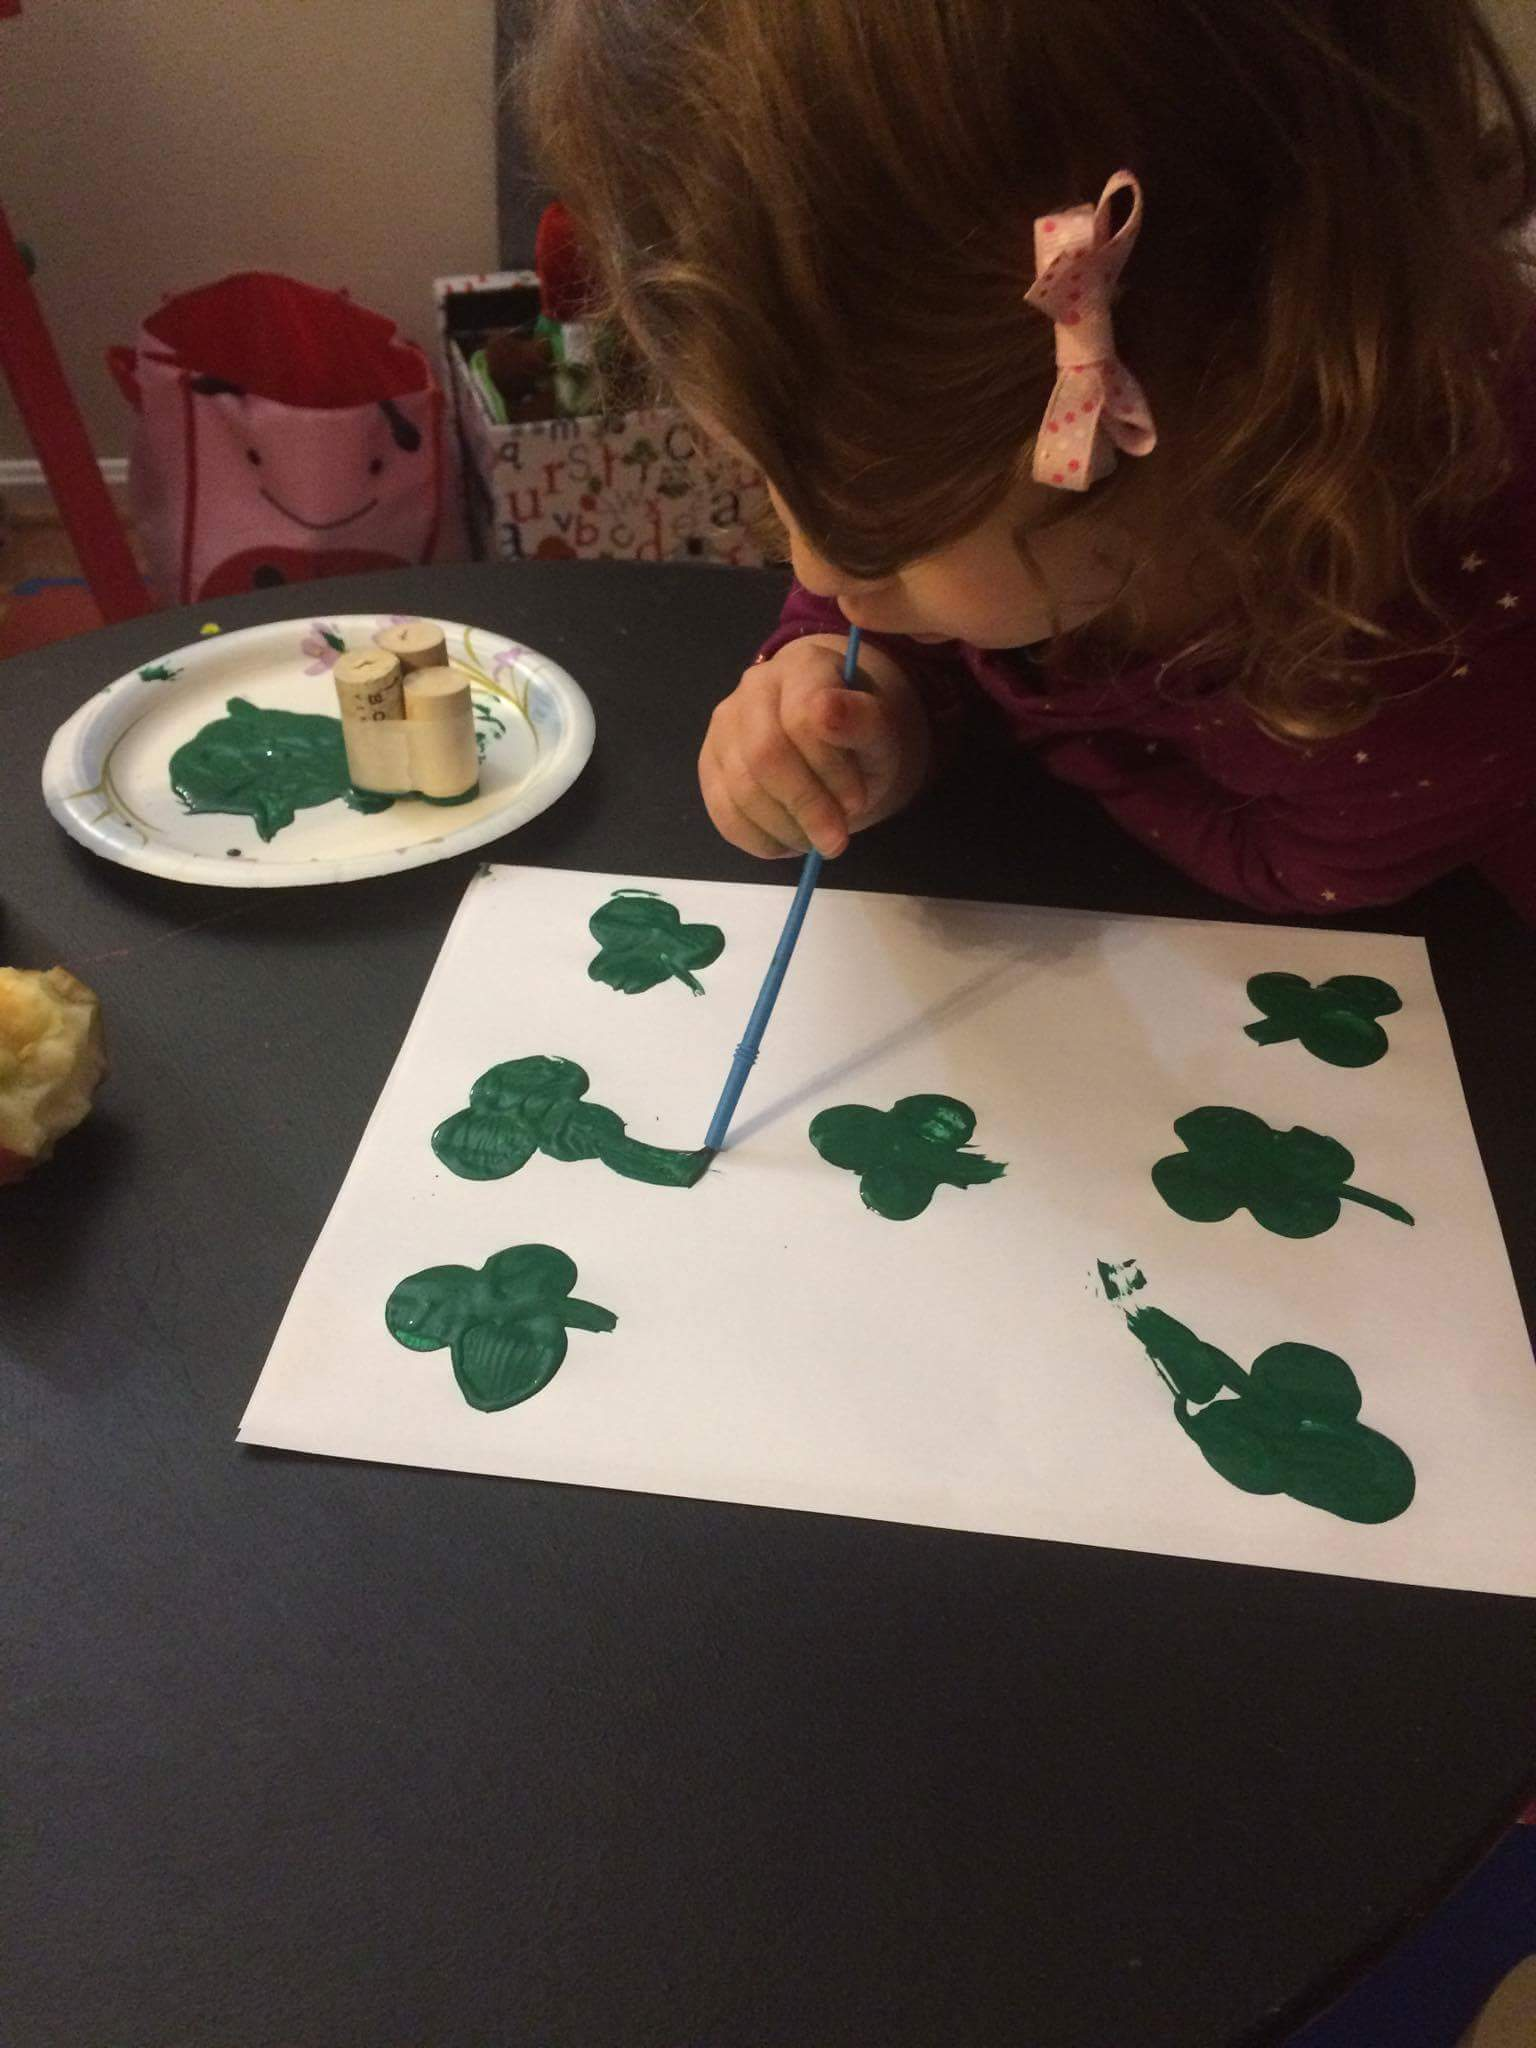 G painting stems on the shamrocks